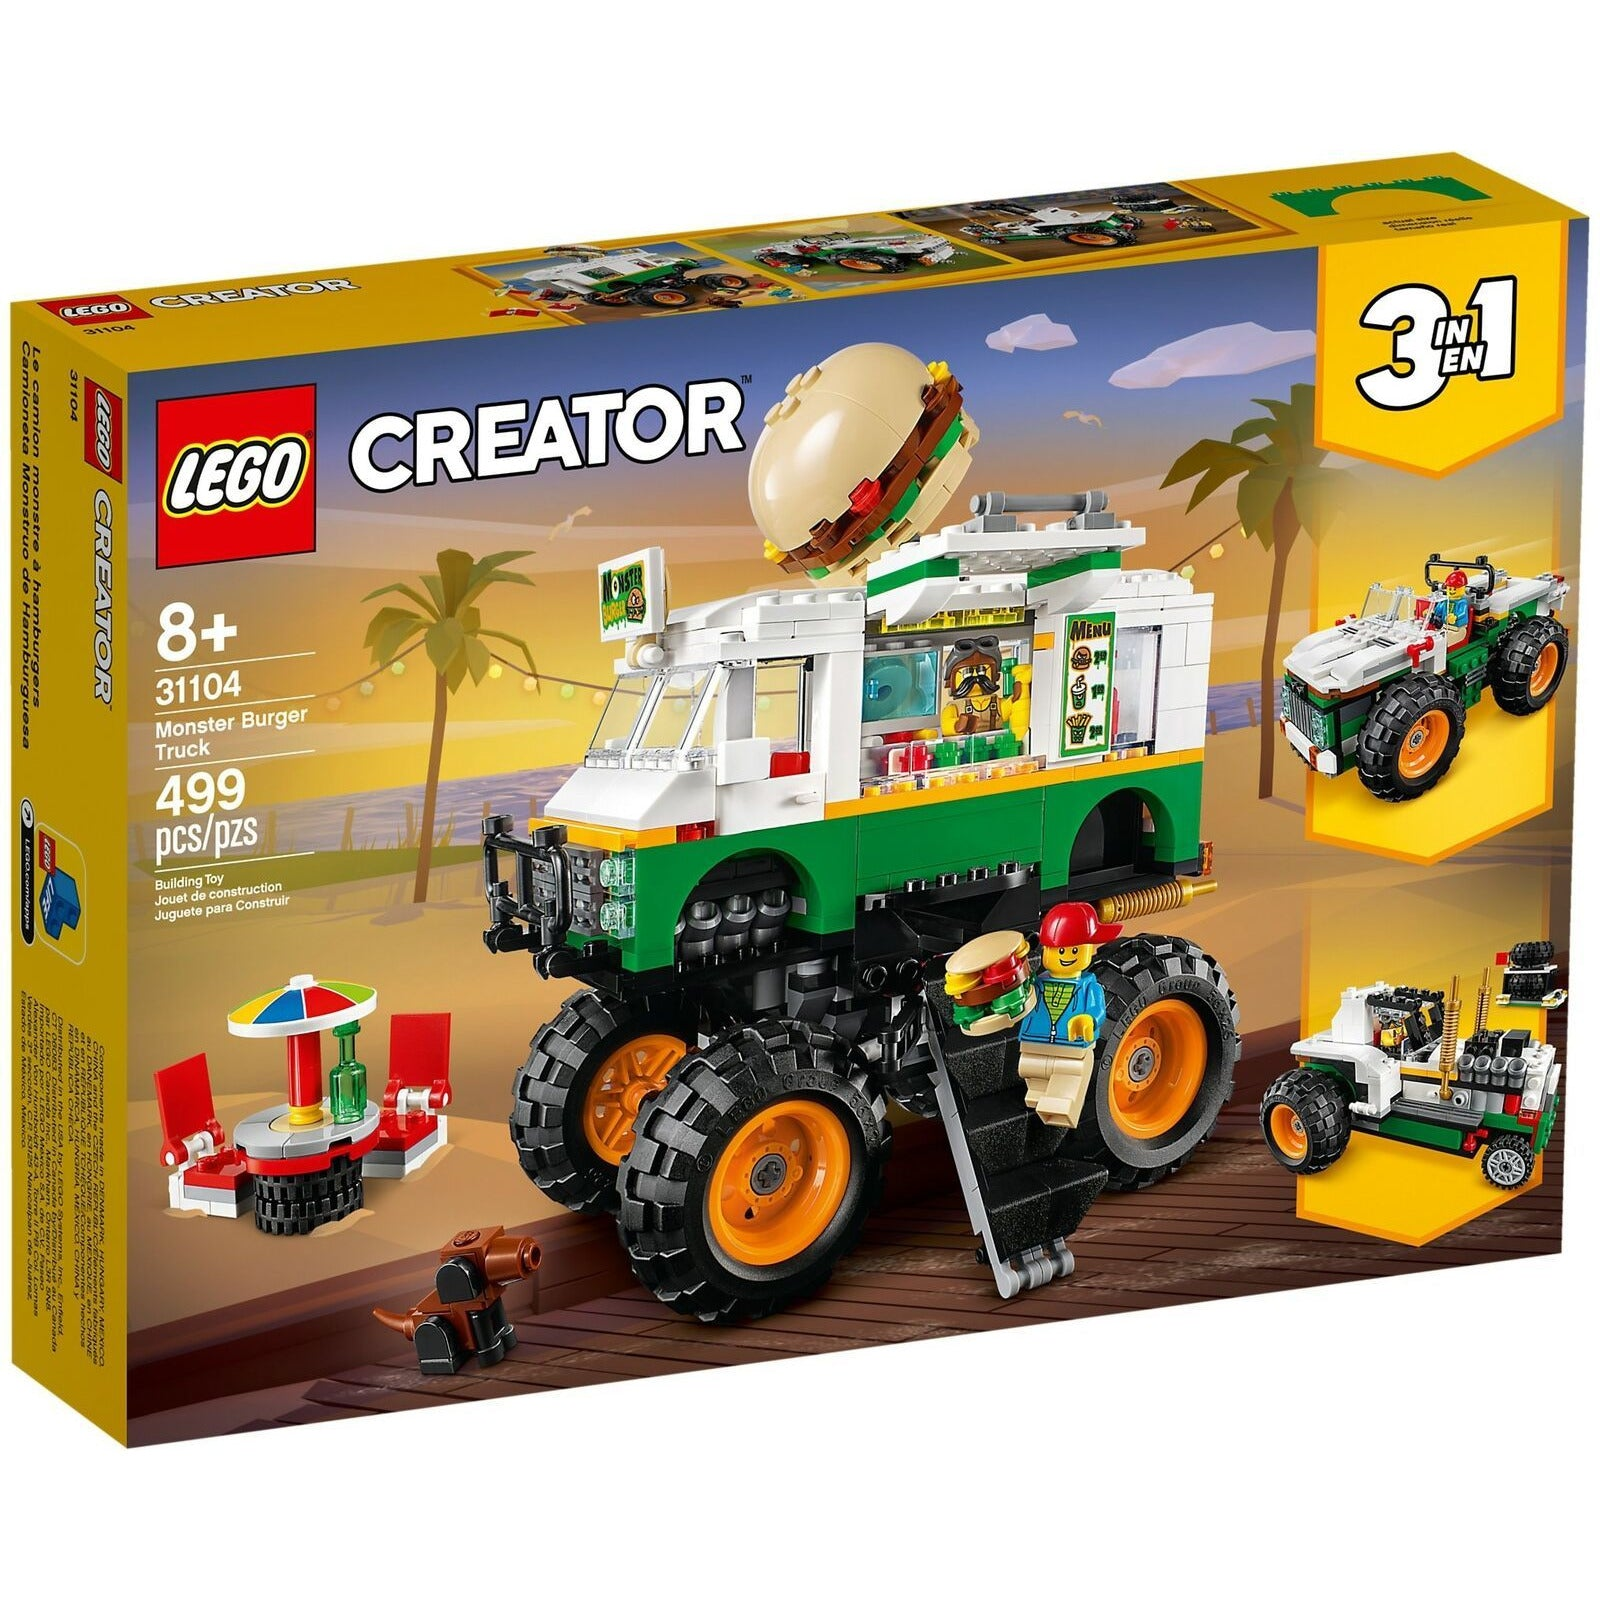 LEGO 31104 Monster Burger Truck CREATOR